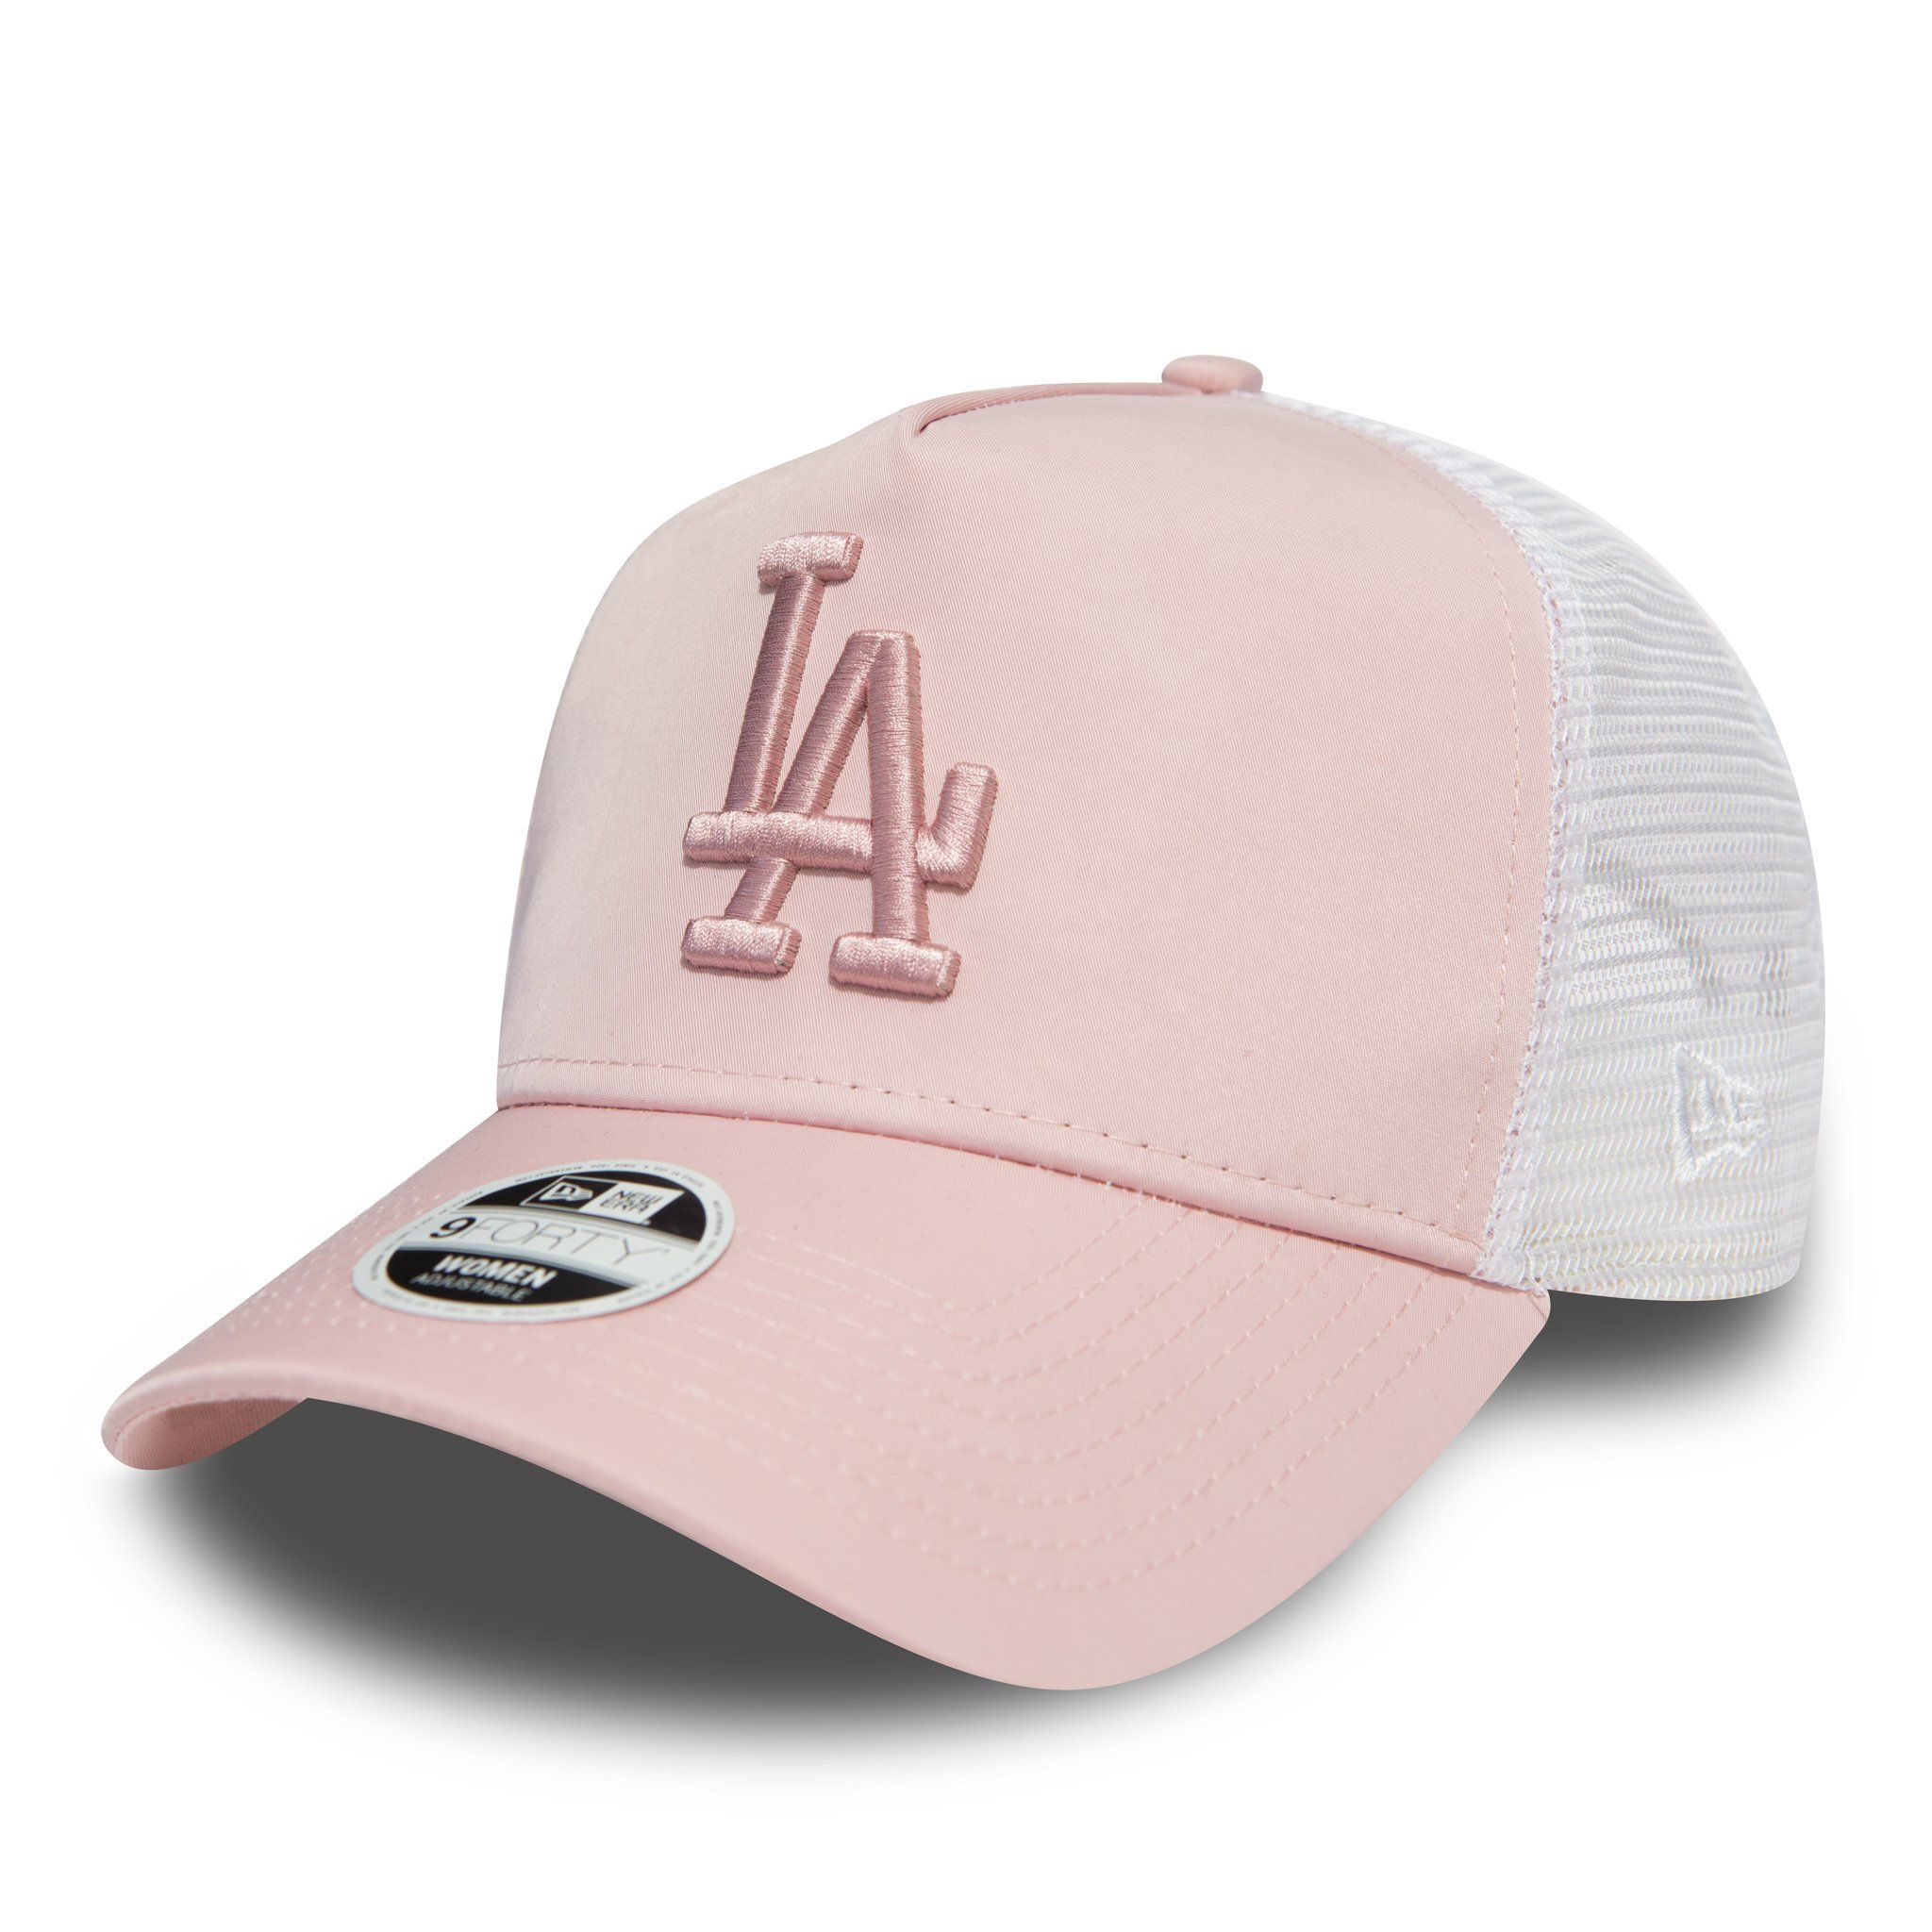 71821f550e5 LA Dodgers Womens New Era 940 Pink Satin Trucker Cap – lovemycap ...